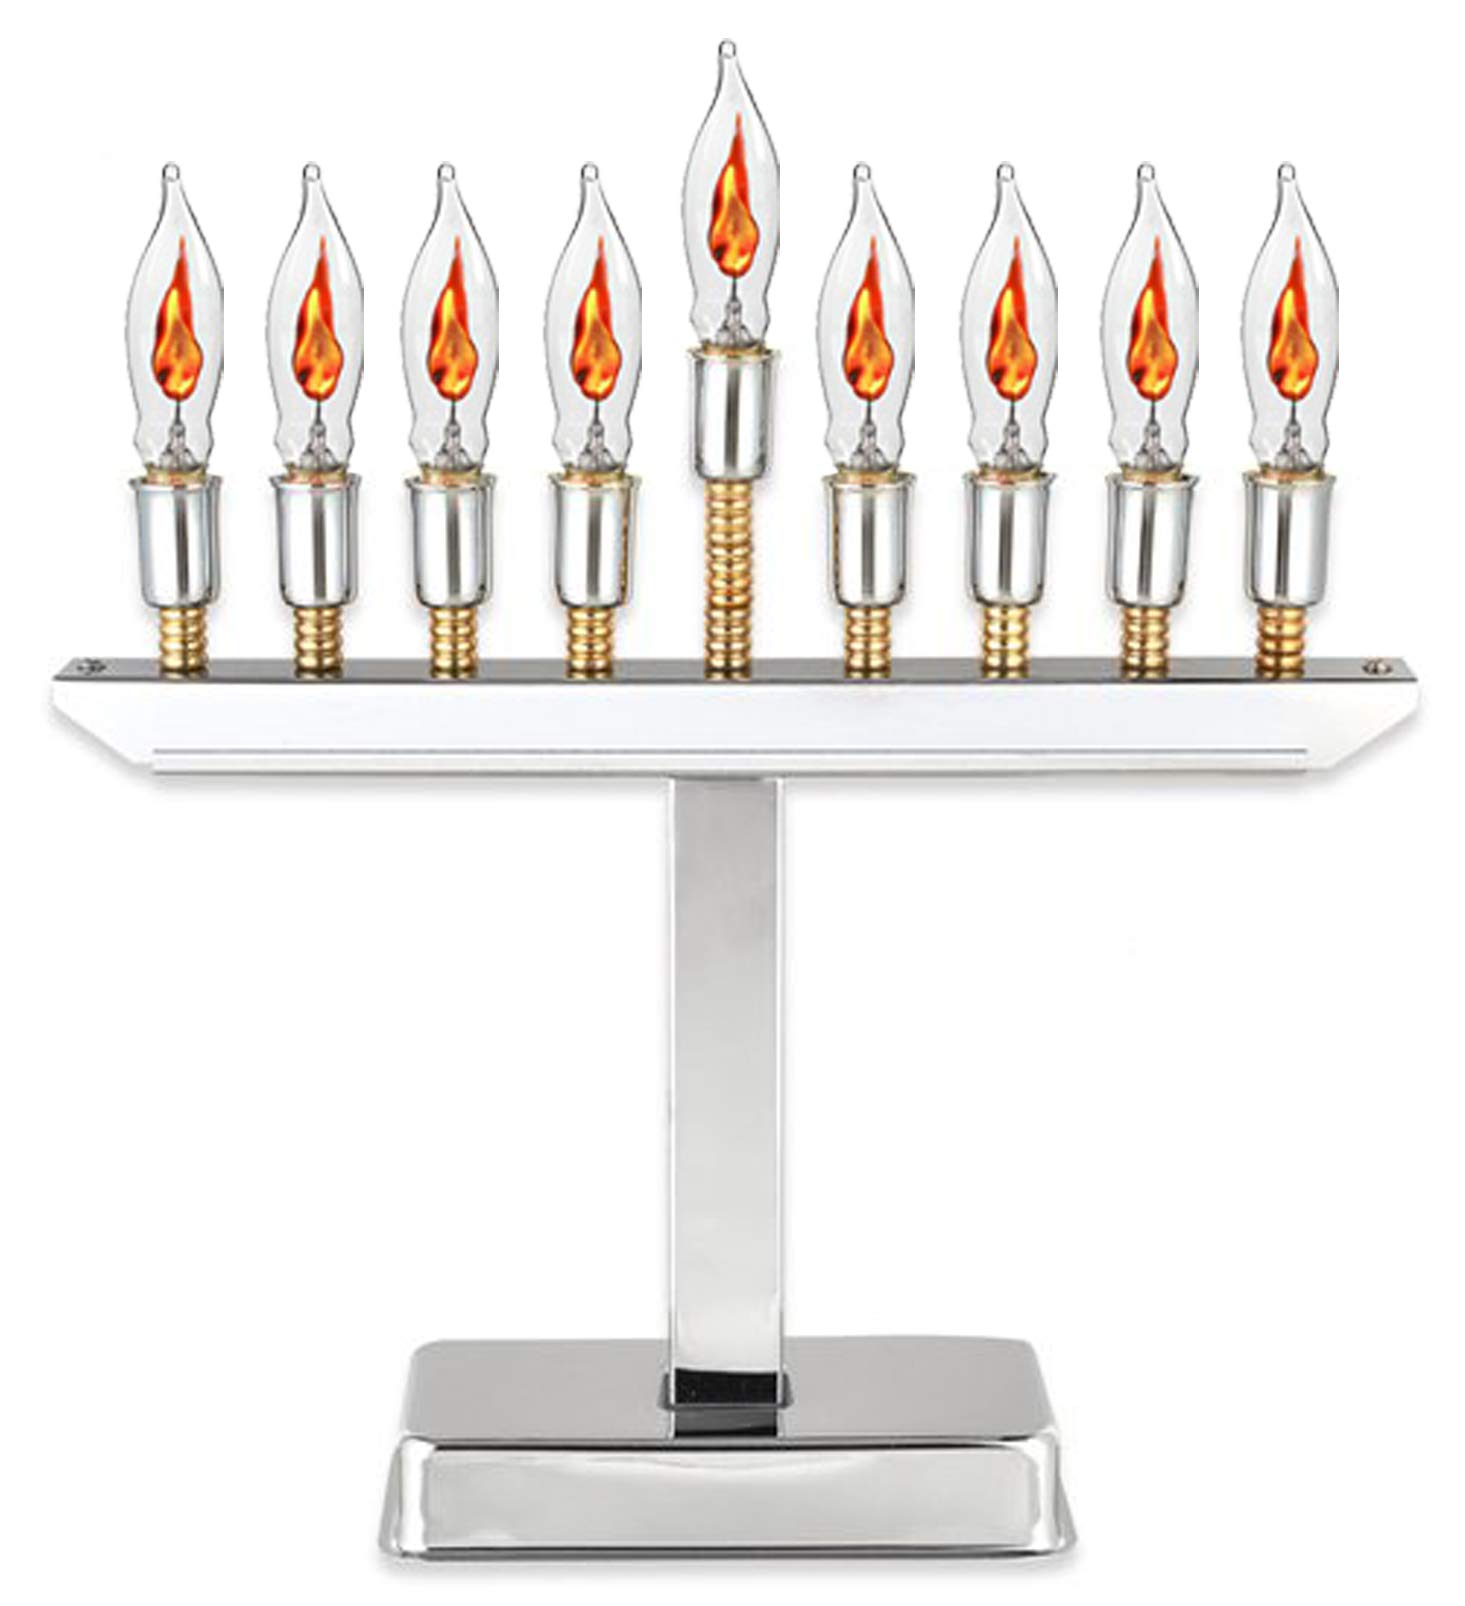 Electric Menorah Highly Polished Chrome Plated With Gold Accents